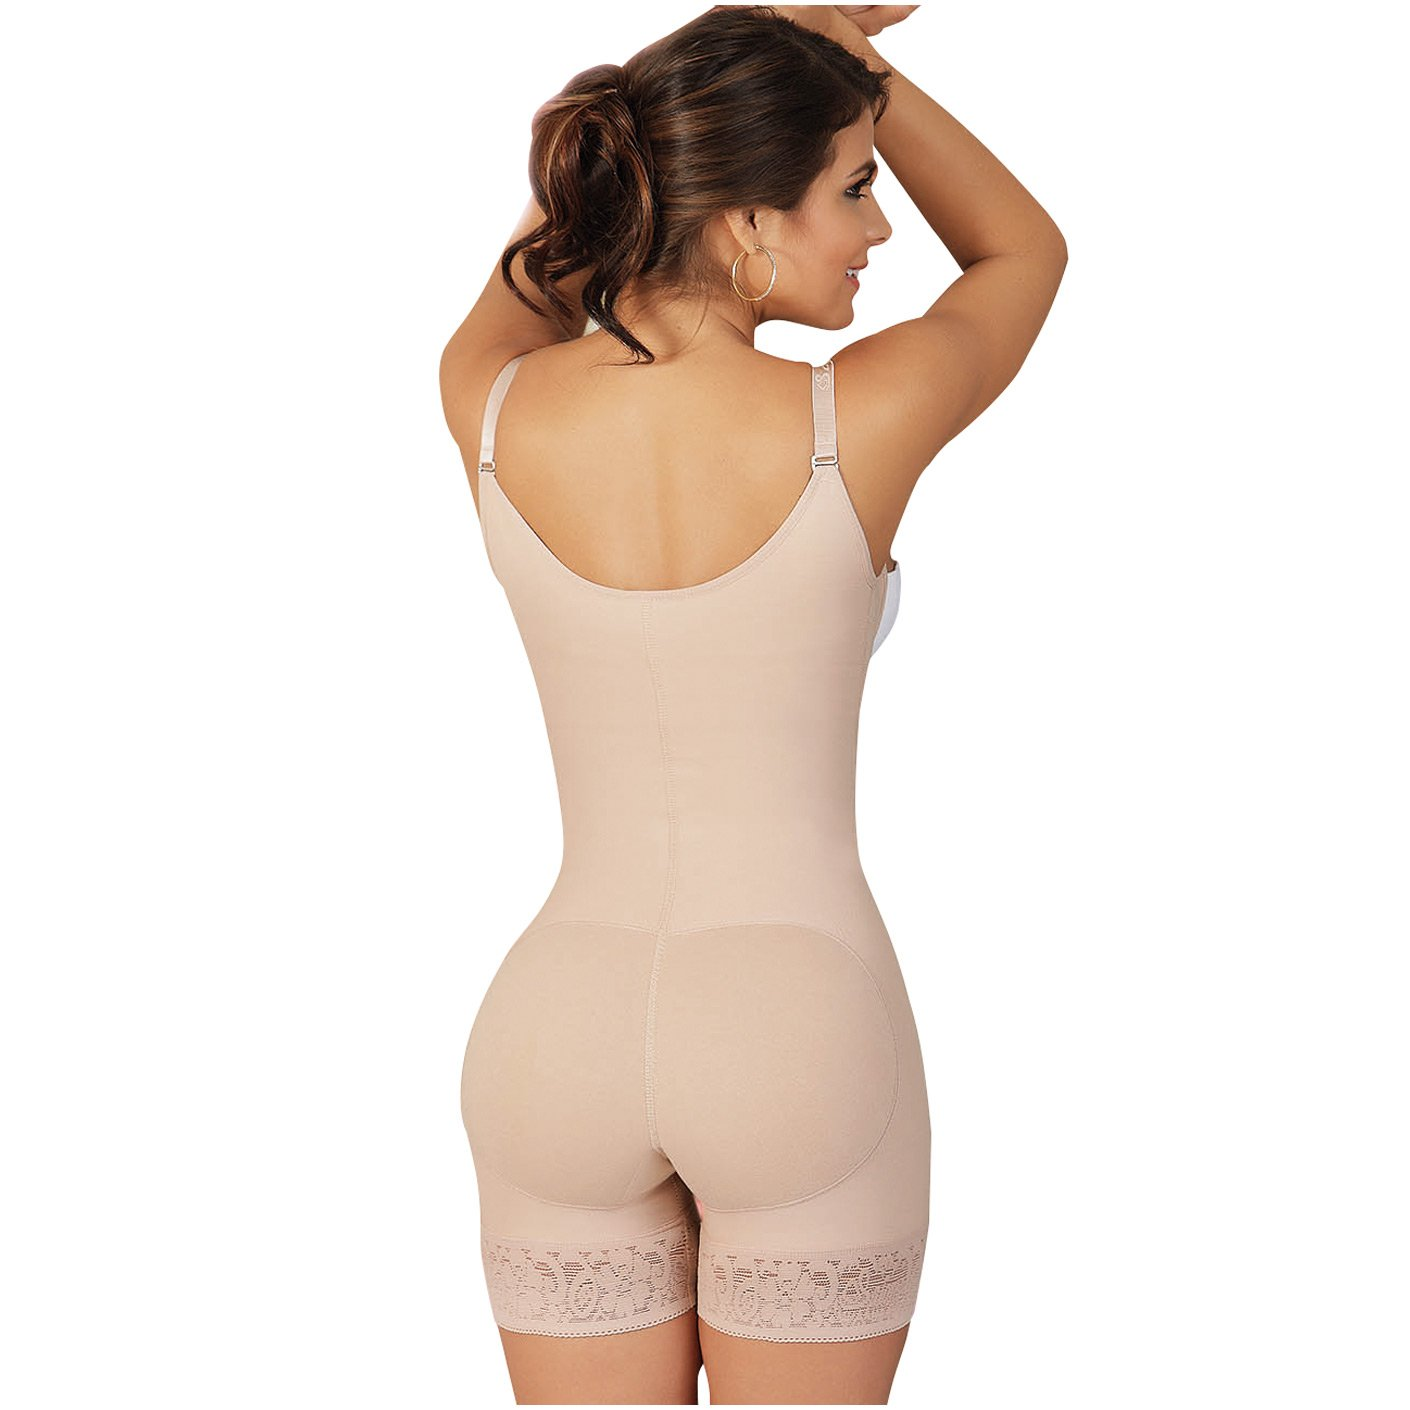 Fajas Salome Womens 0216 Body Shaper Girdle Gluteus Enhancer at Amazon Womens Clothing store: